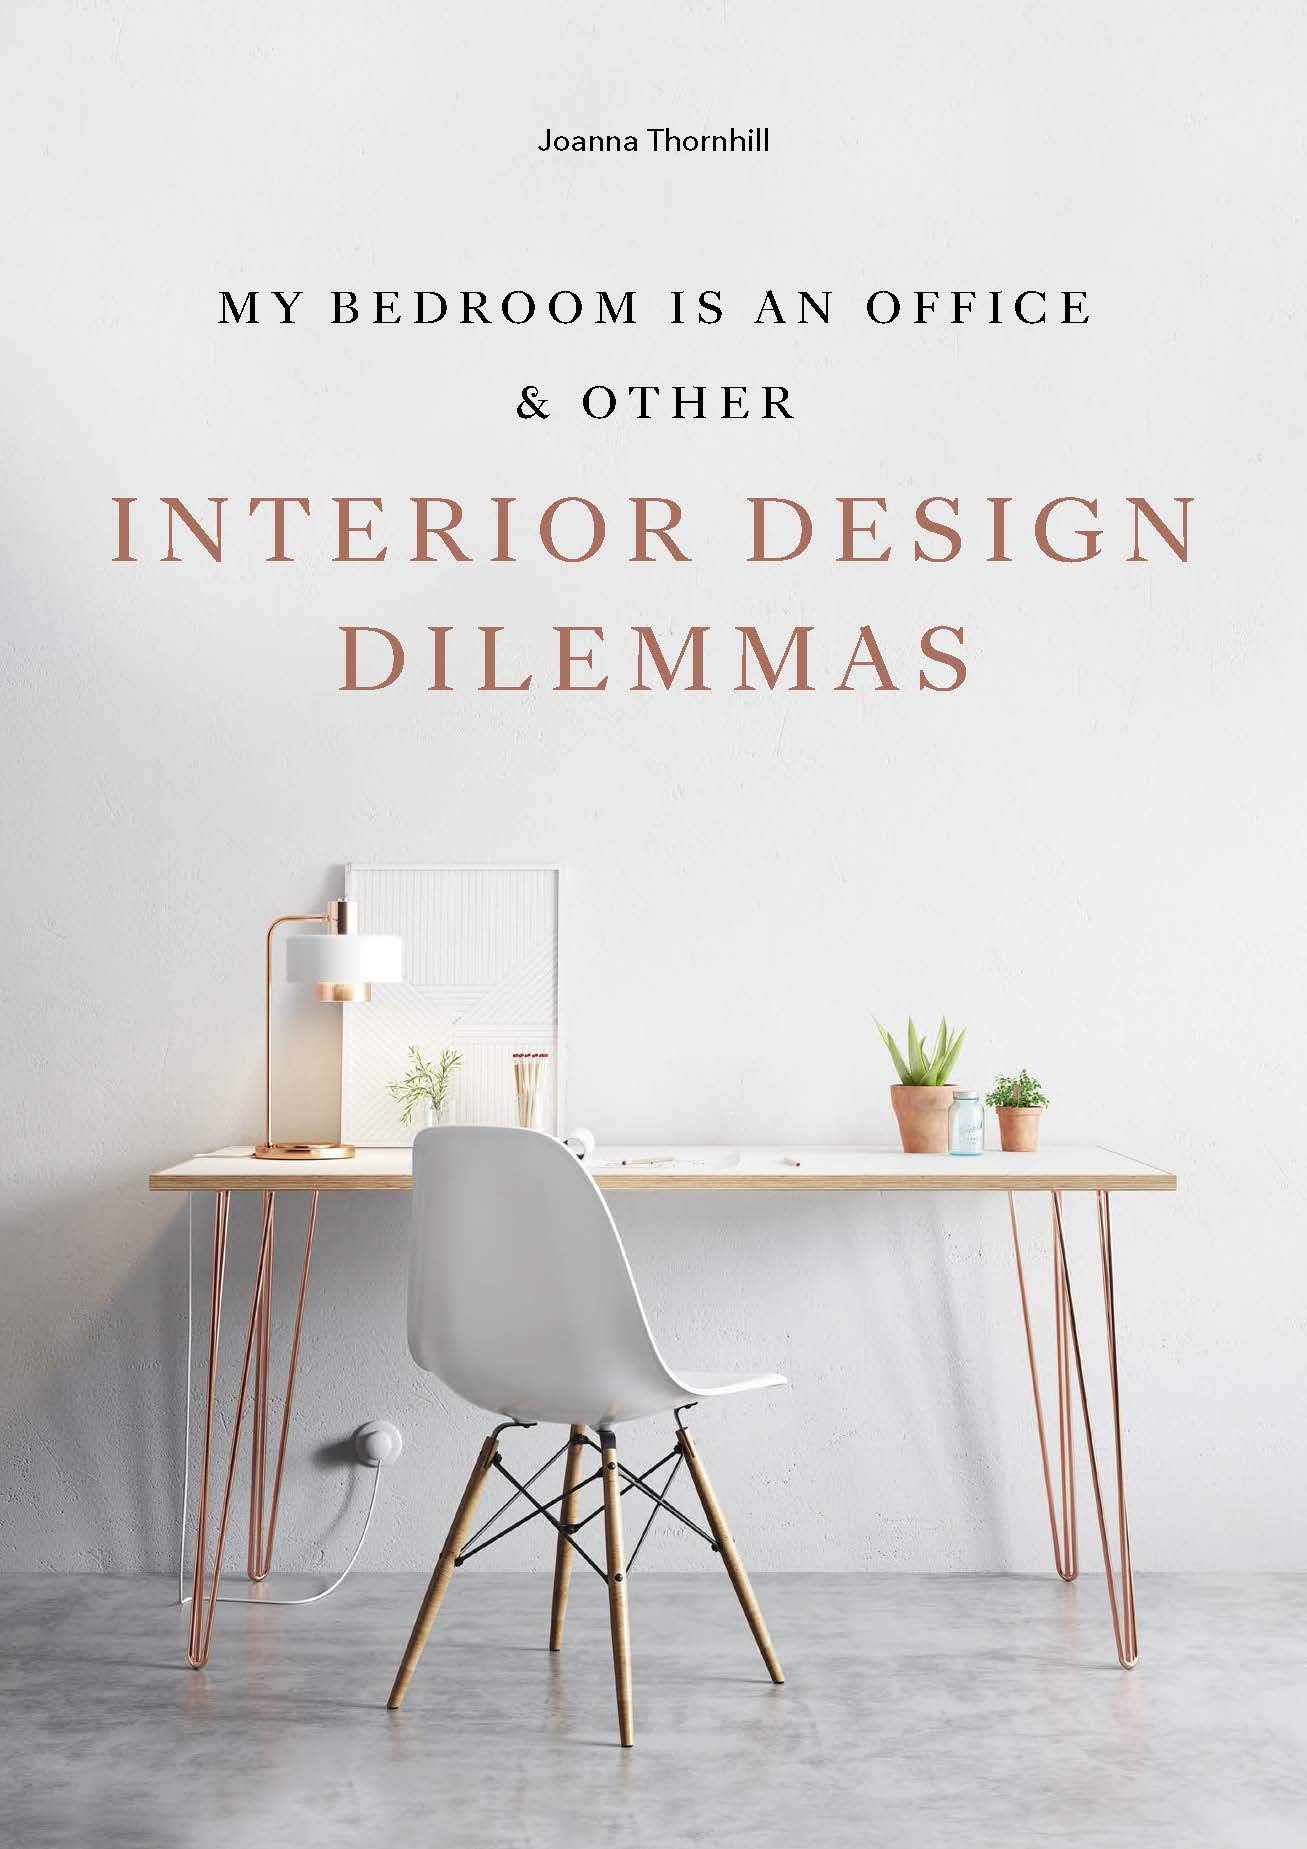 My Bedroom is an Office: & Other Interior Design Dilemmas by Laurence King Publishing